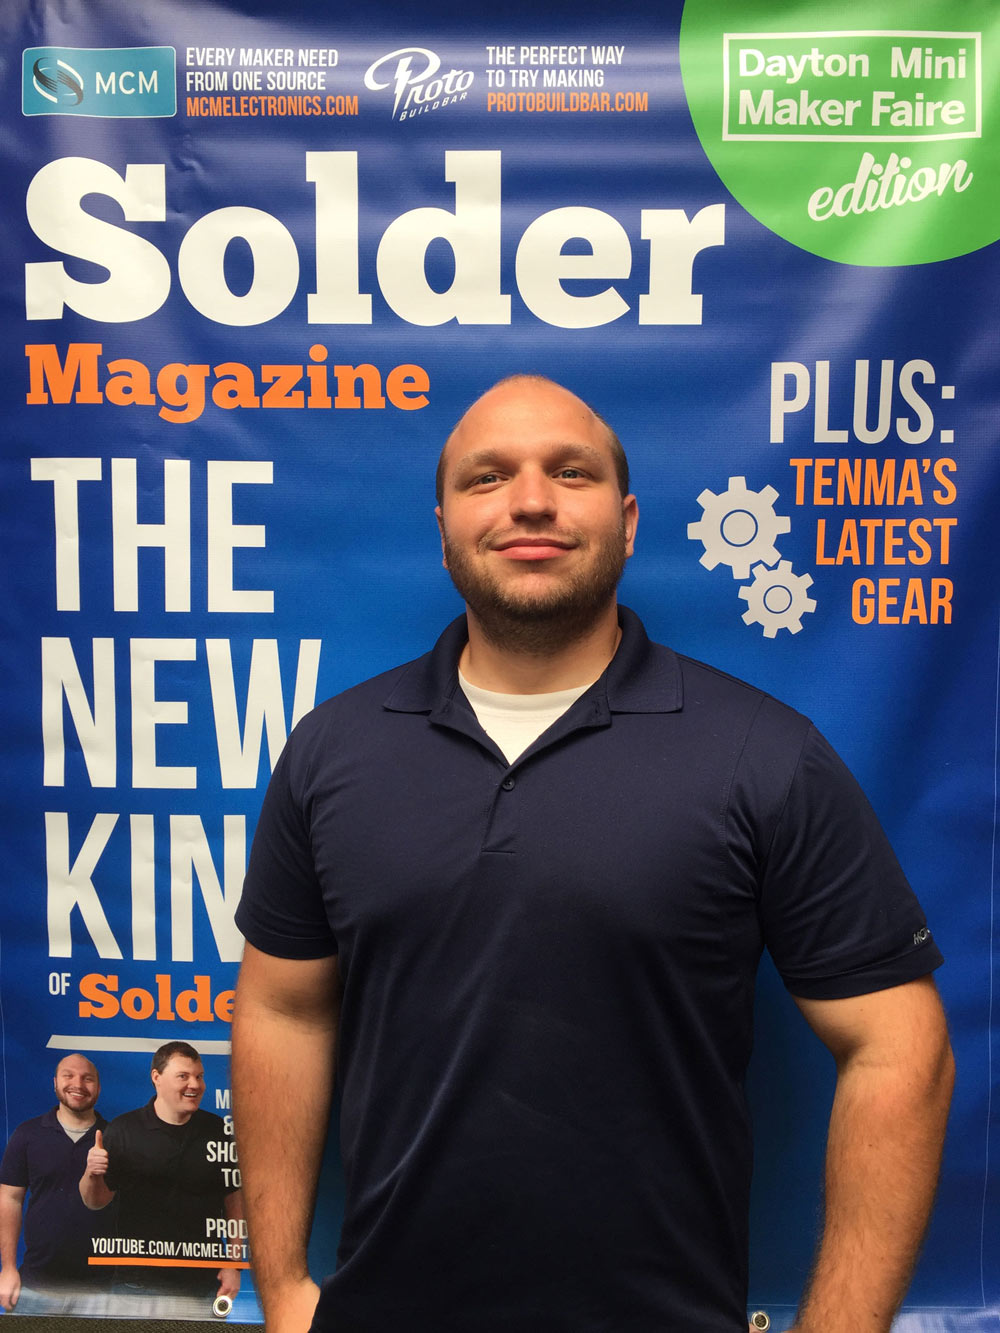 Solder Magazine Cover Photo Opp